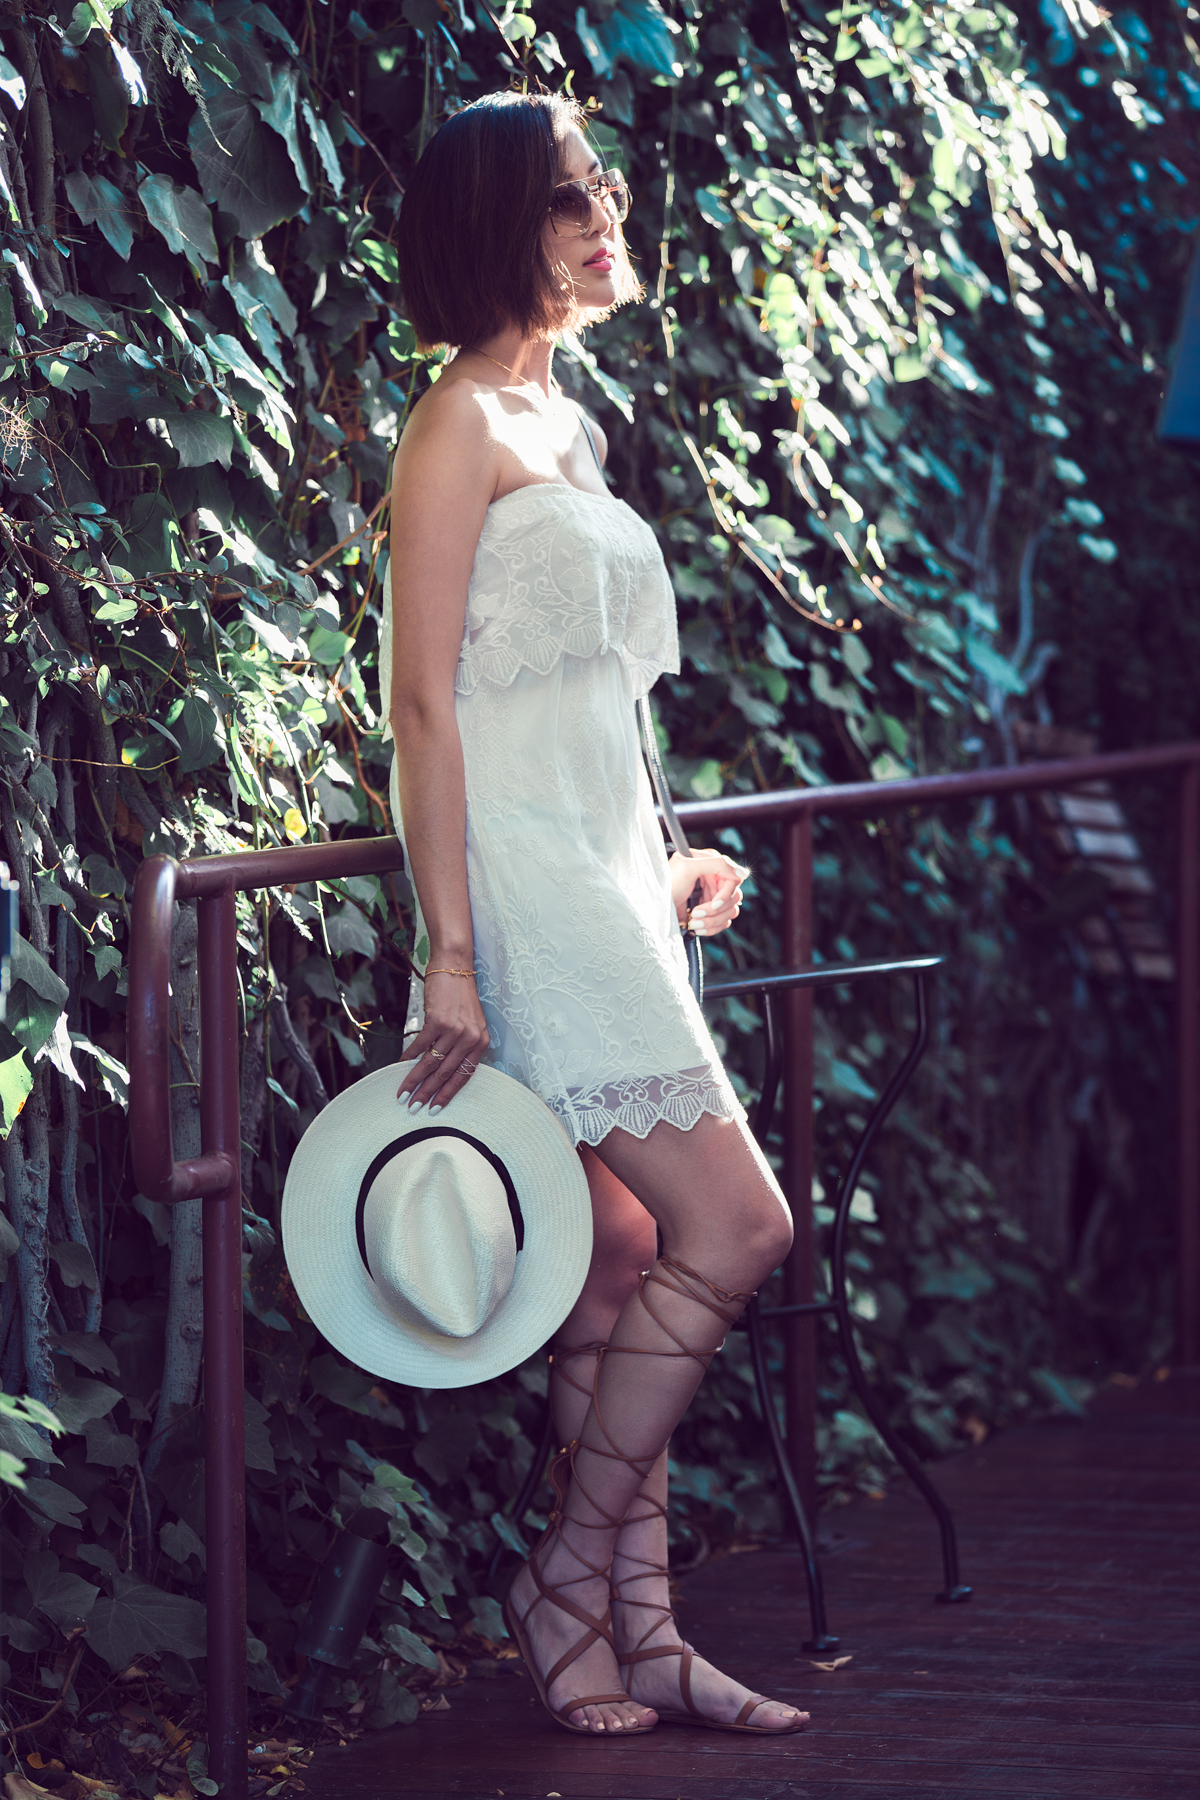 Add a matching panama hat and lace up's to your lace dress and you are good to go. Via Chriselle Lim Dress/Hat: Express, Shoes: Valentino